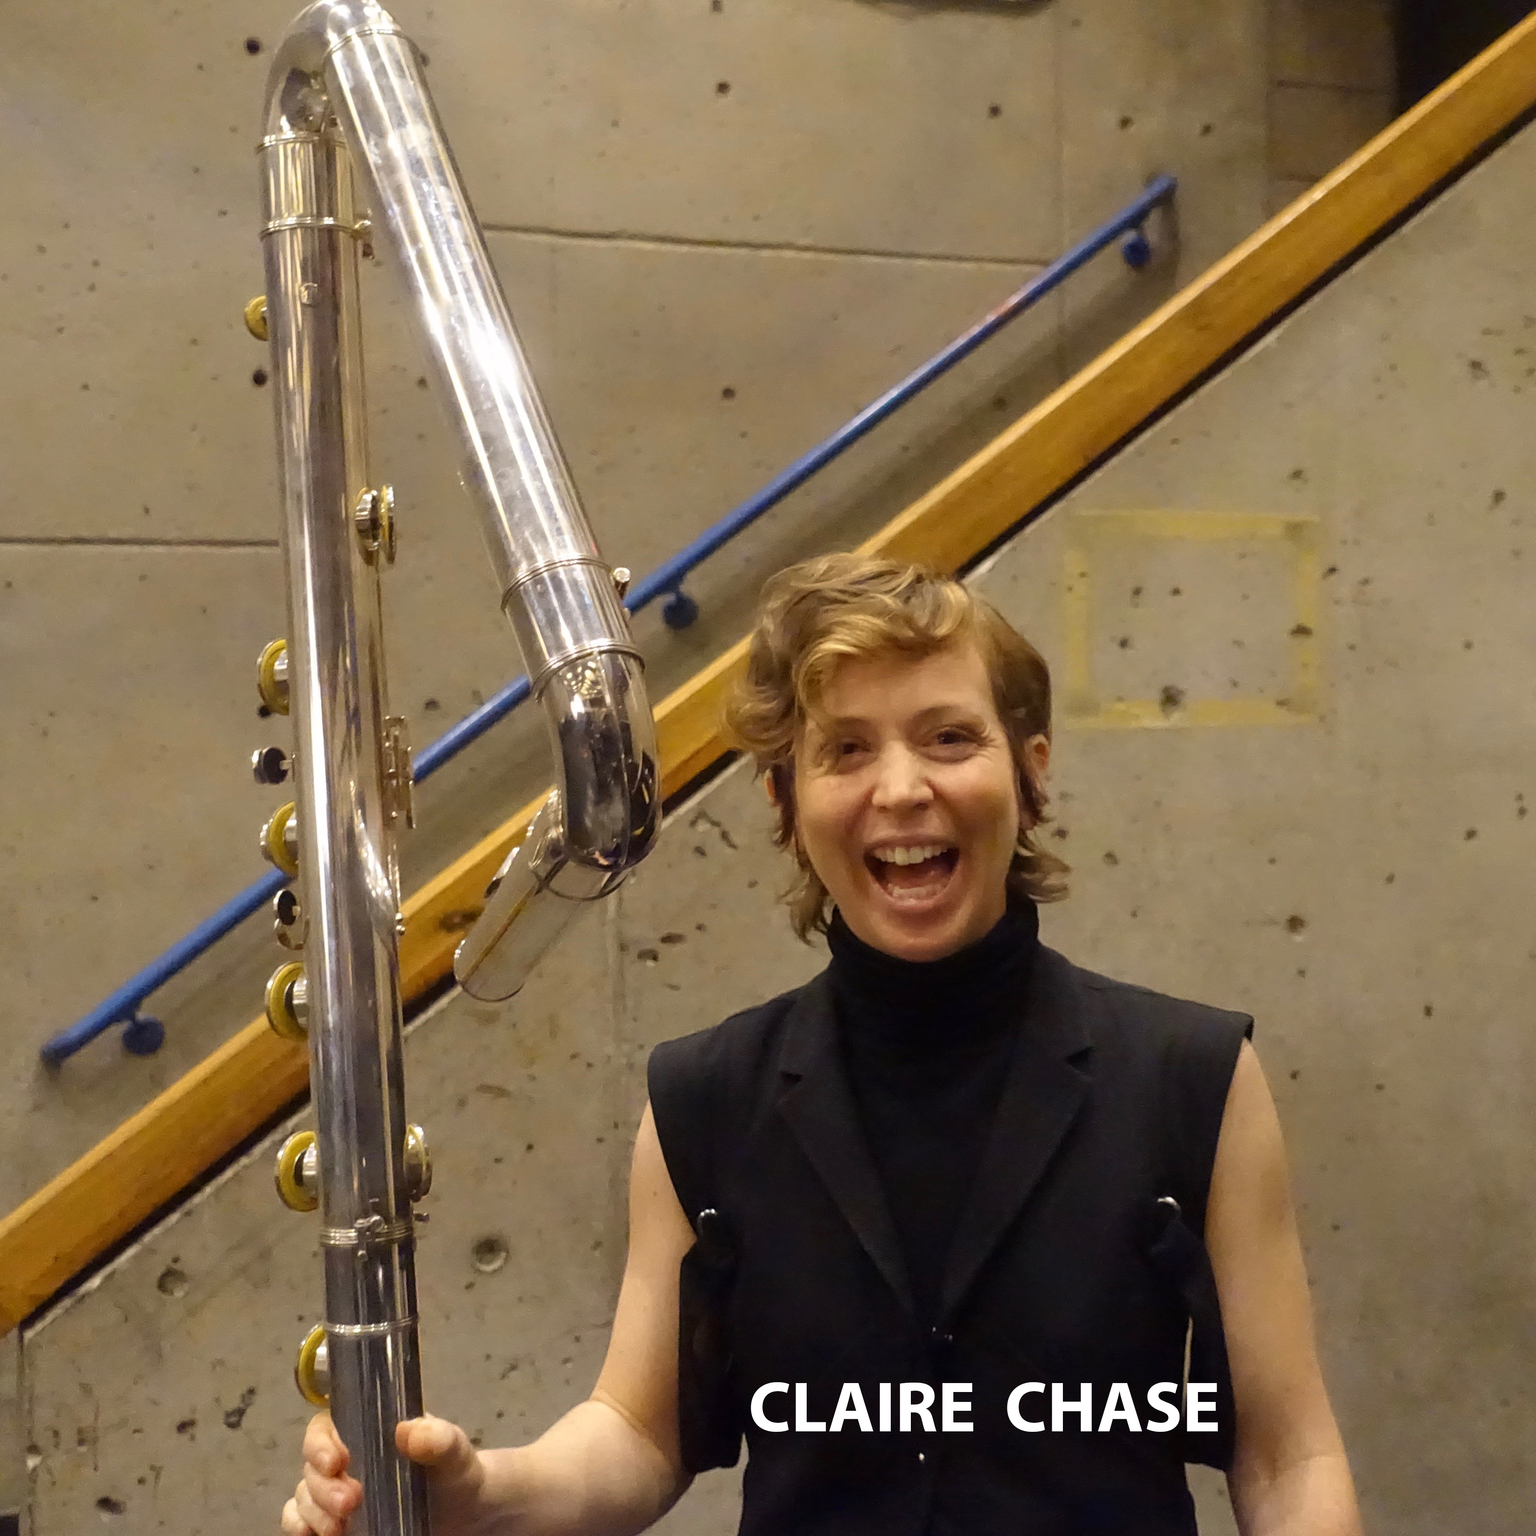 Claire Chase